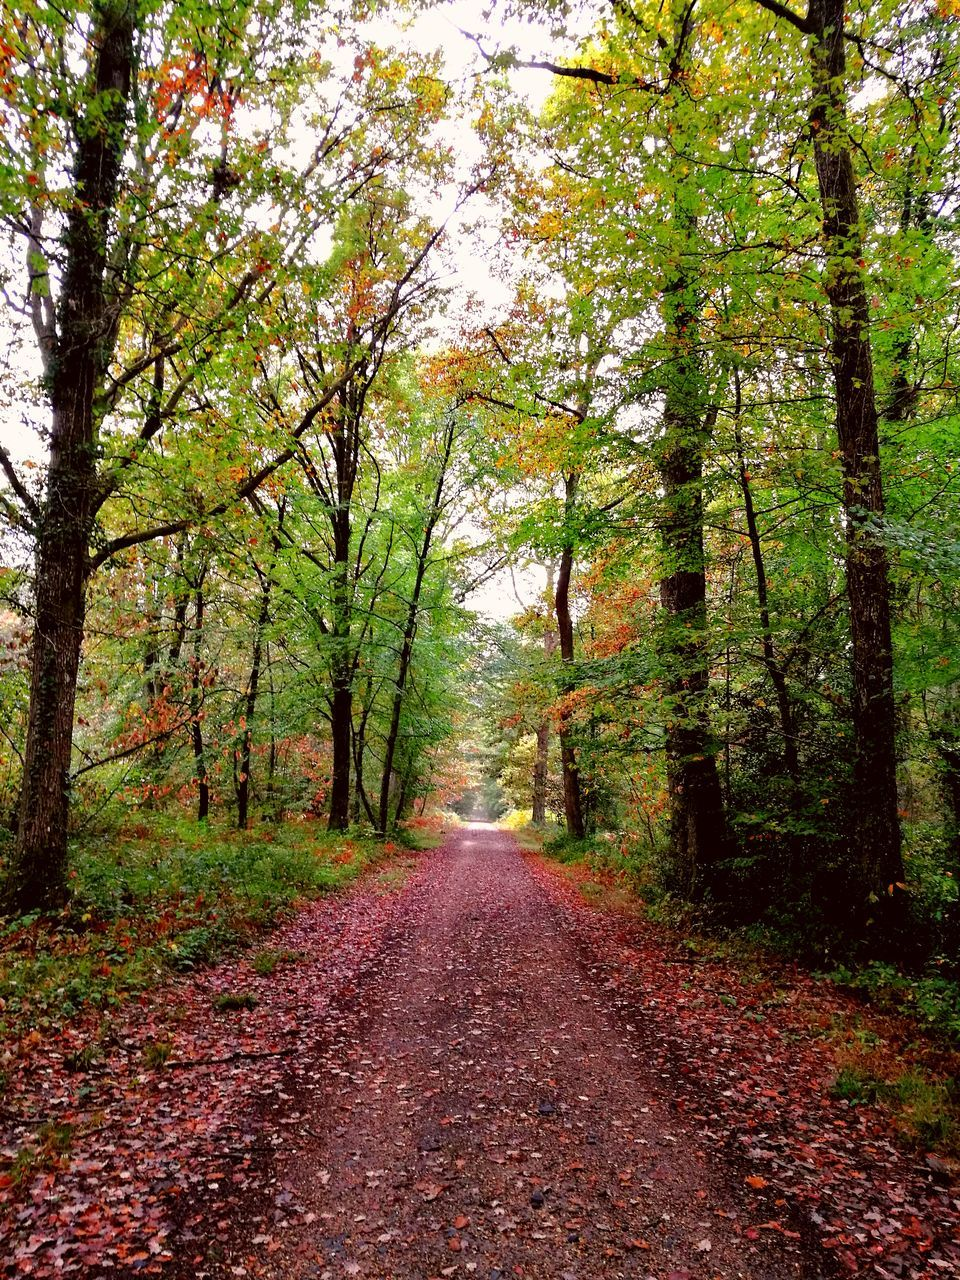 tree, autumn, the way forward, nature, tranquility, tranquil scene, beauty in nature, scenics, day, no people, change, leaf, outdoors, forest, road, branch, growth, landscape, sky